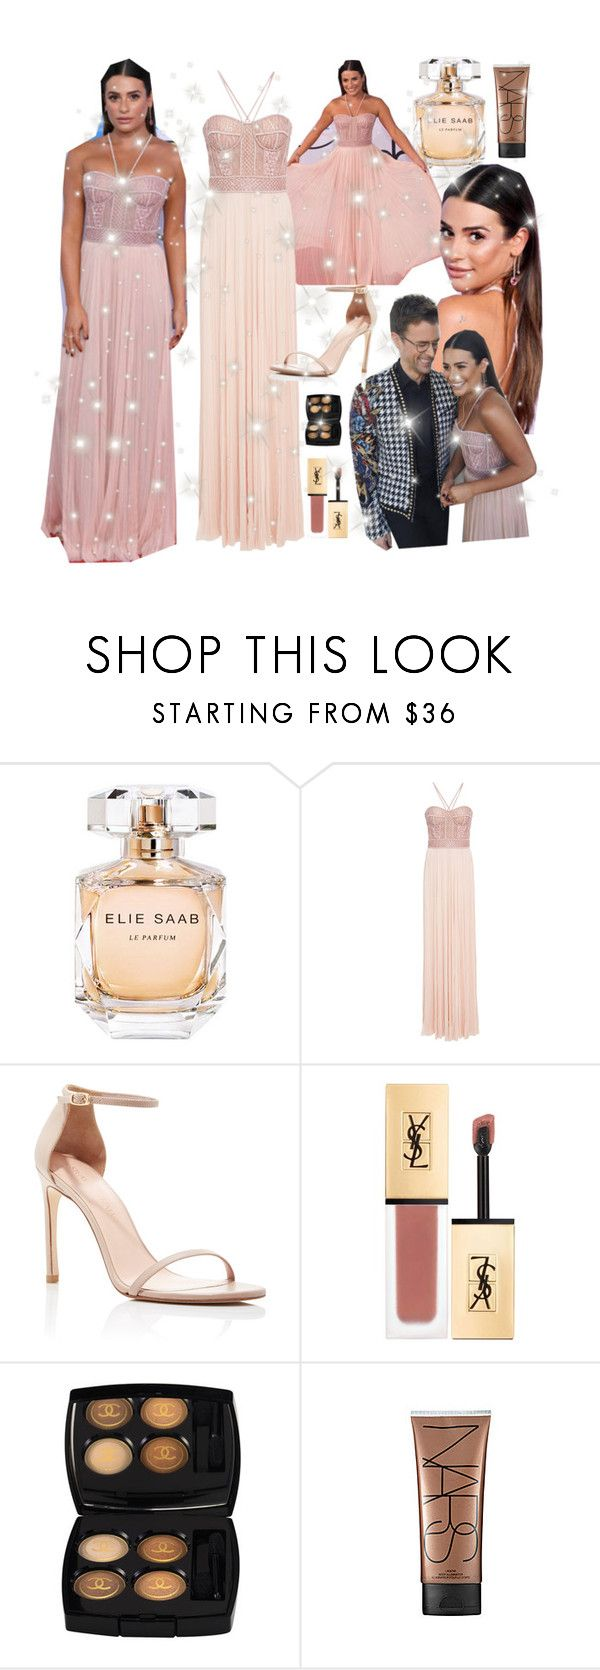 """""""Lea Michele AMAs  2017 Red carpet real look by Brad Goreski"""" by faanciella ❤ liked on Polyvore featuring Elie Saab, J. Mendel, Stuart Weitzman, Yves Saint Laurent, Chanel, NARS Cosmetics, 90s, finn, leamichele and AMAs"""